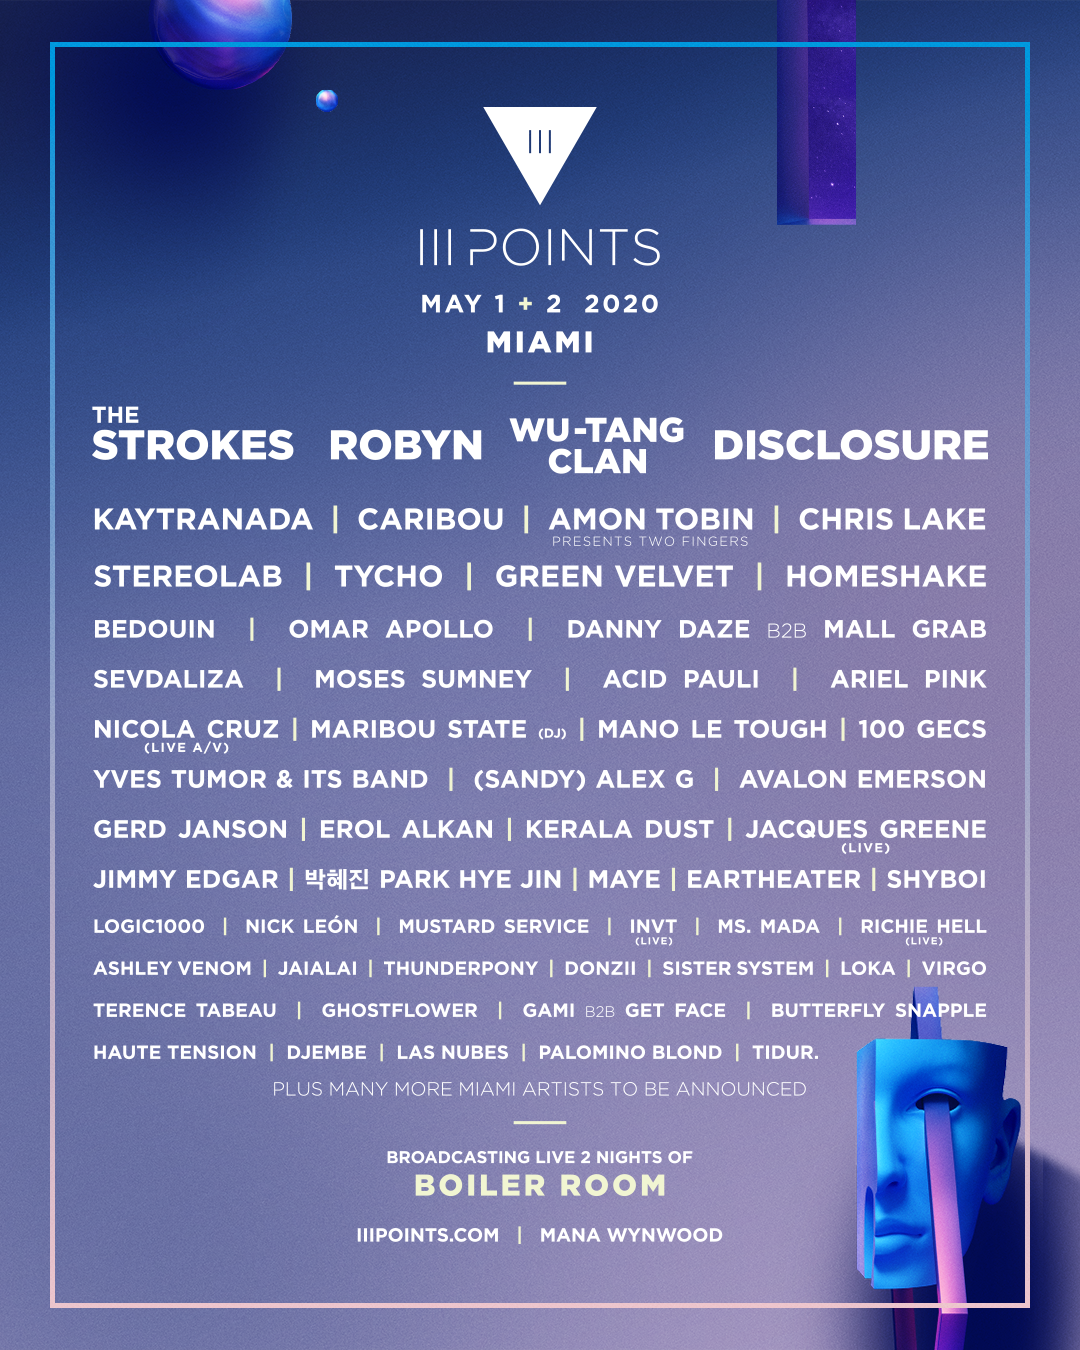 iii points lineup